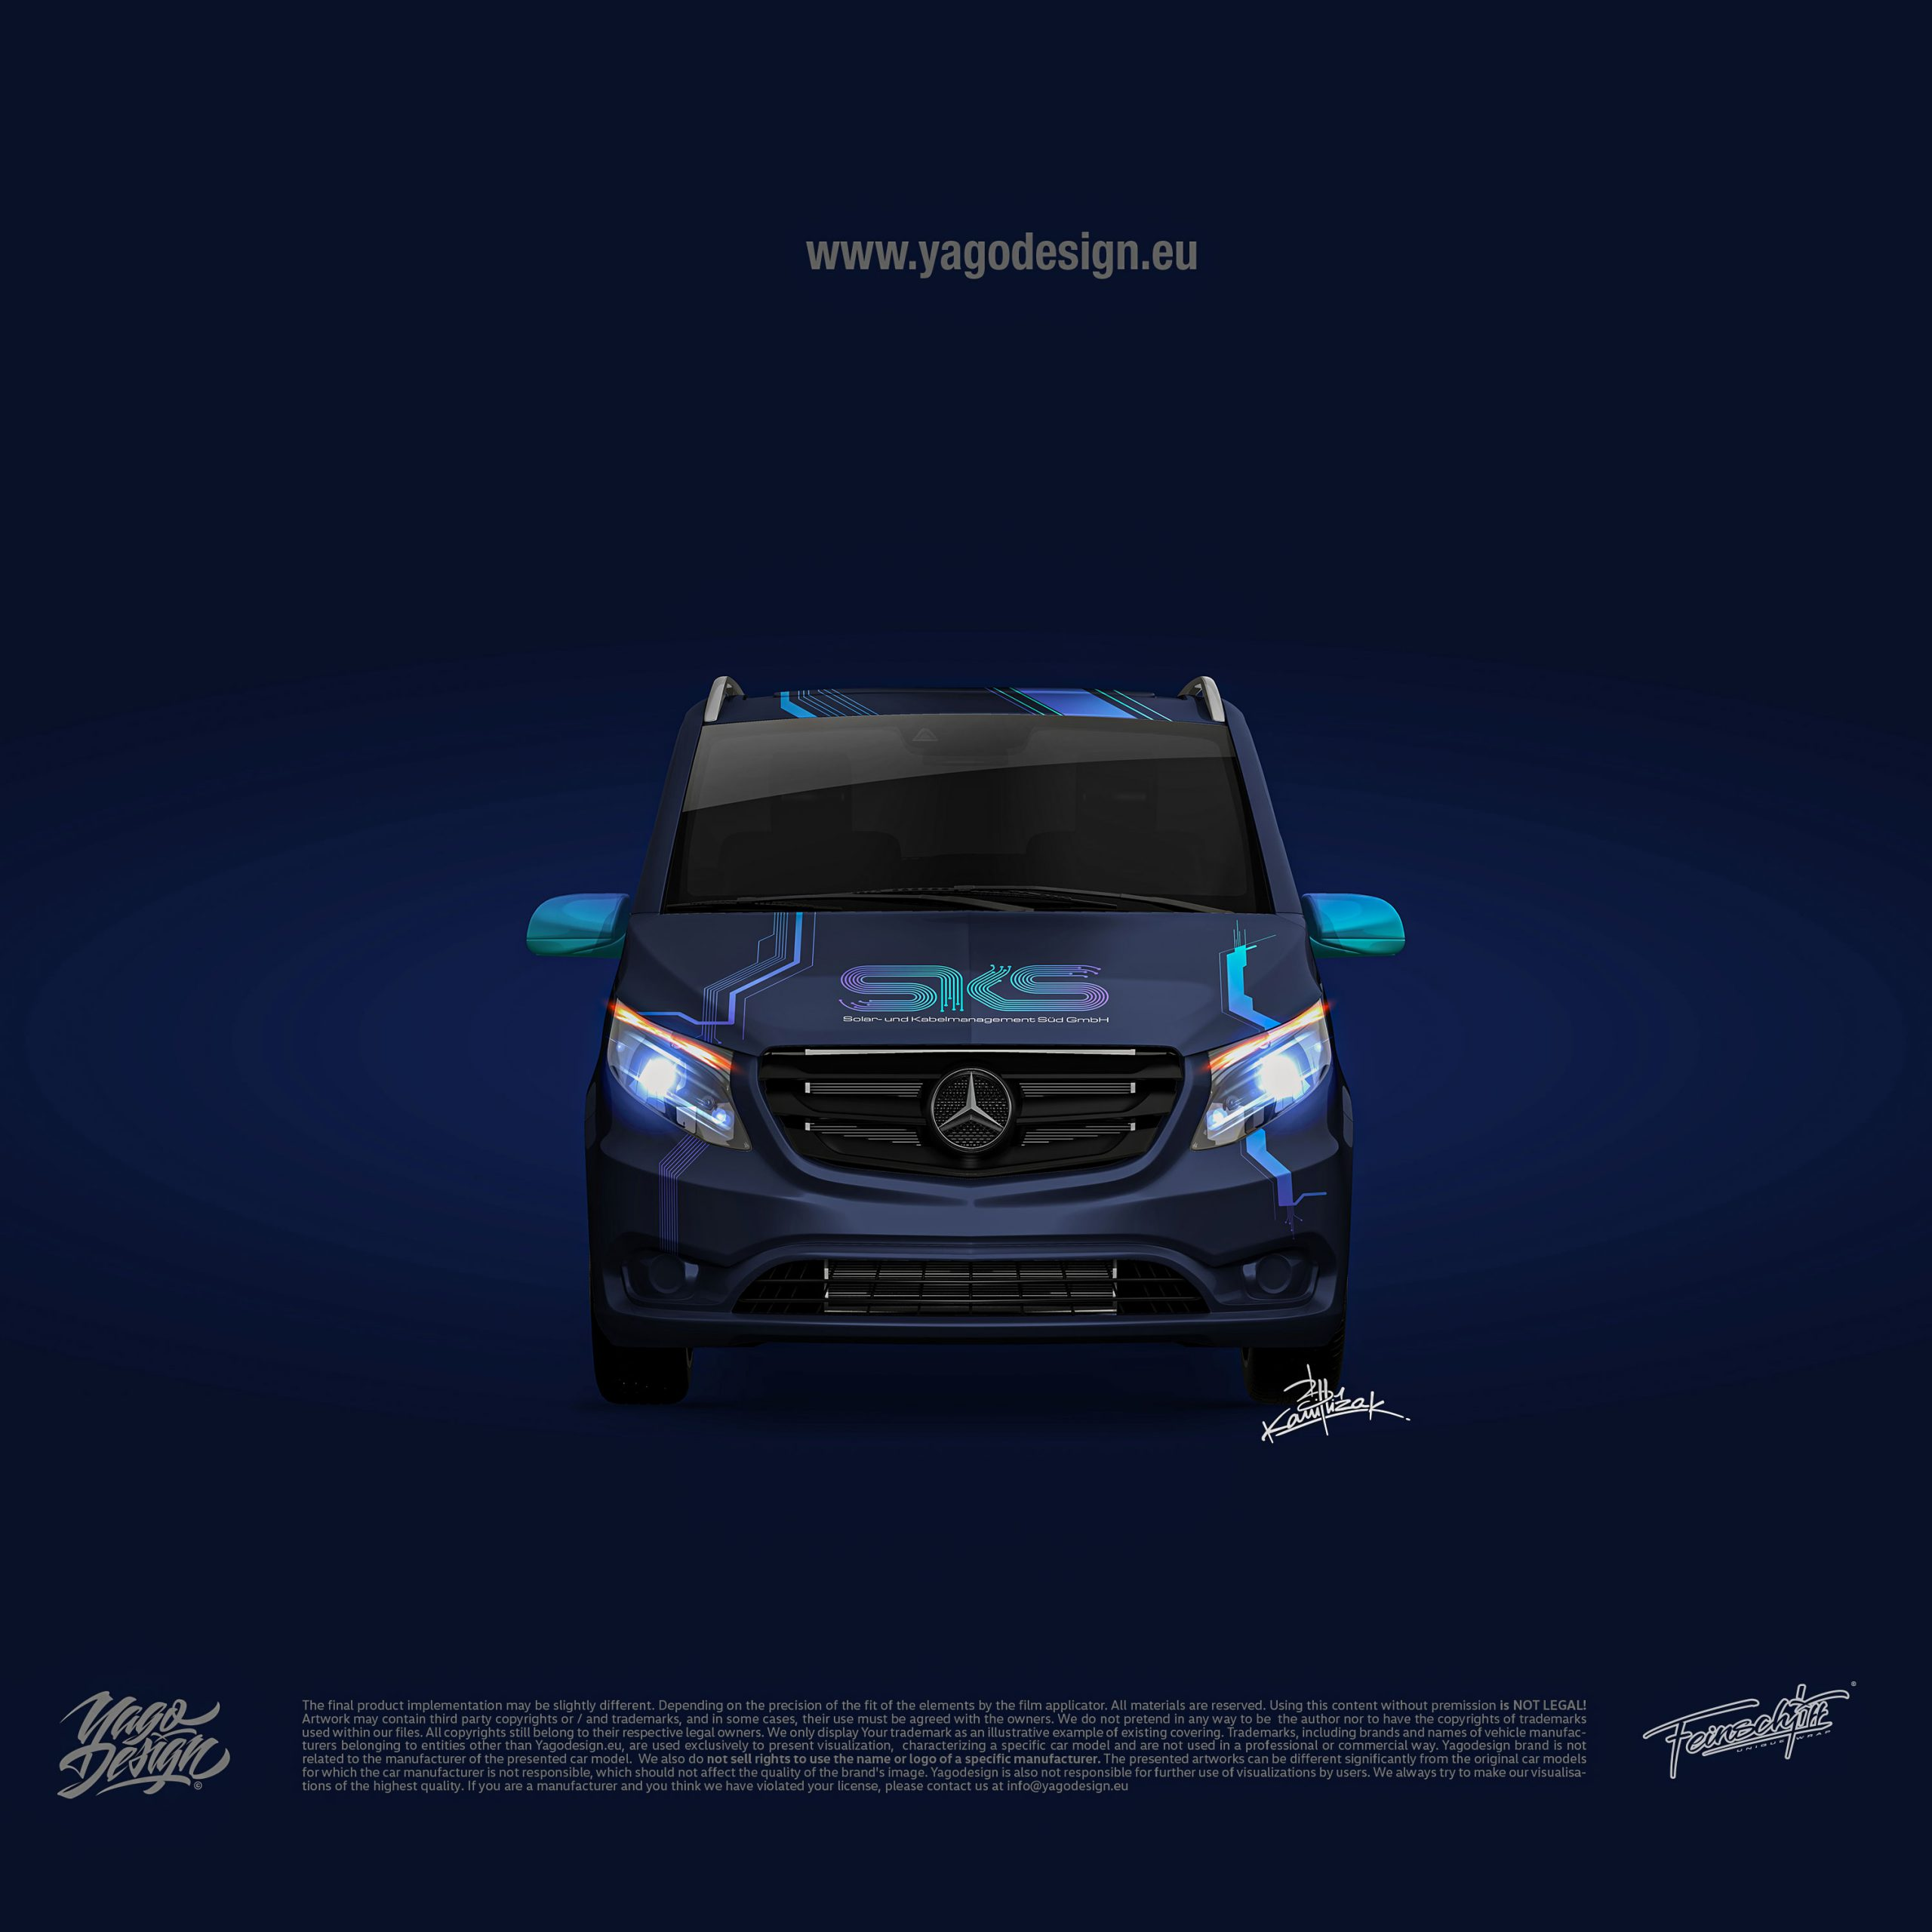 Mercedes-Benz-Vito-Panel-Van-by-Yagodesign-Automotive-Design-Studio-Front-View-scaled